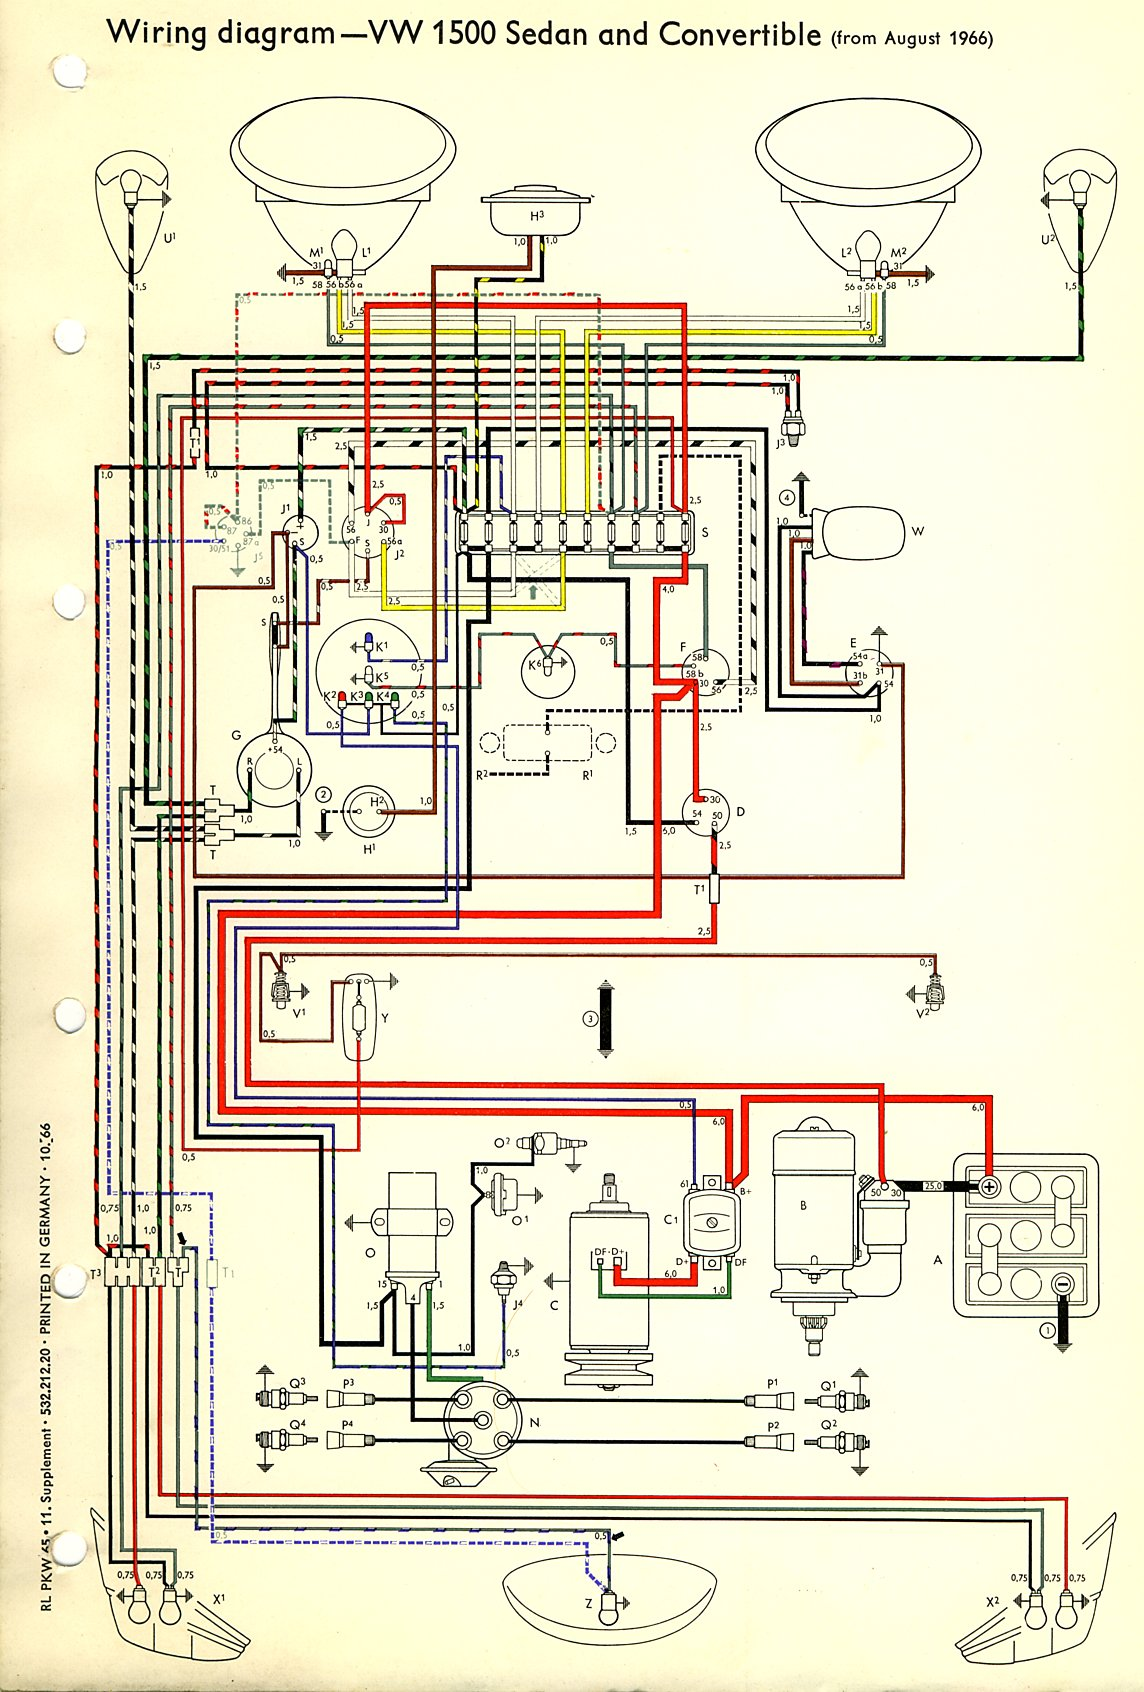 bug_67 vw wiring harness diagram cj7 wiring harness diagram \u2022 wiring DIY Lingerie Harness at virtualis.co